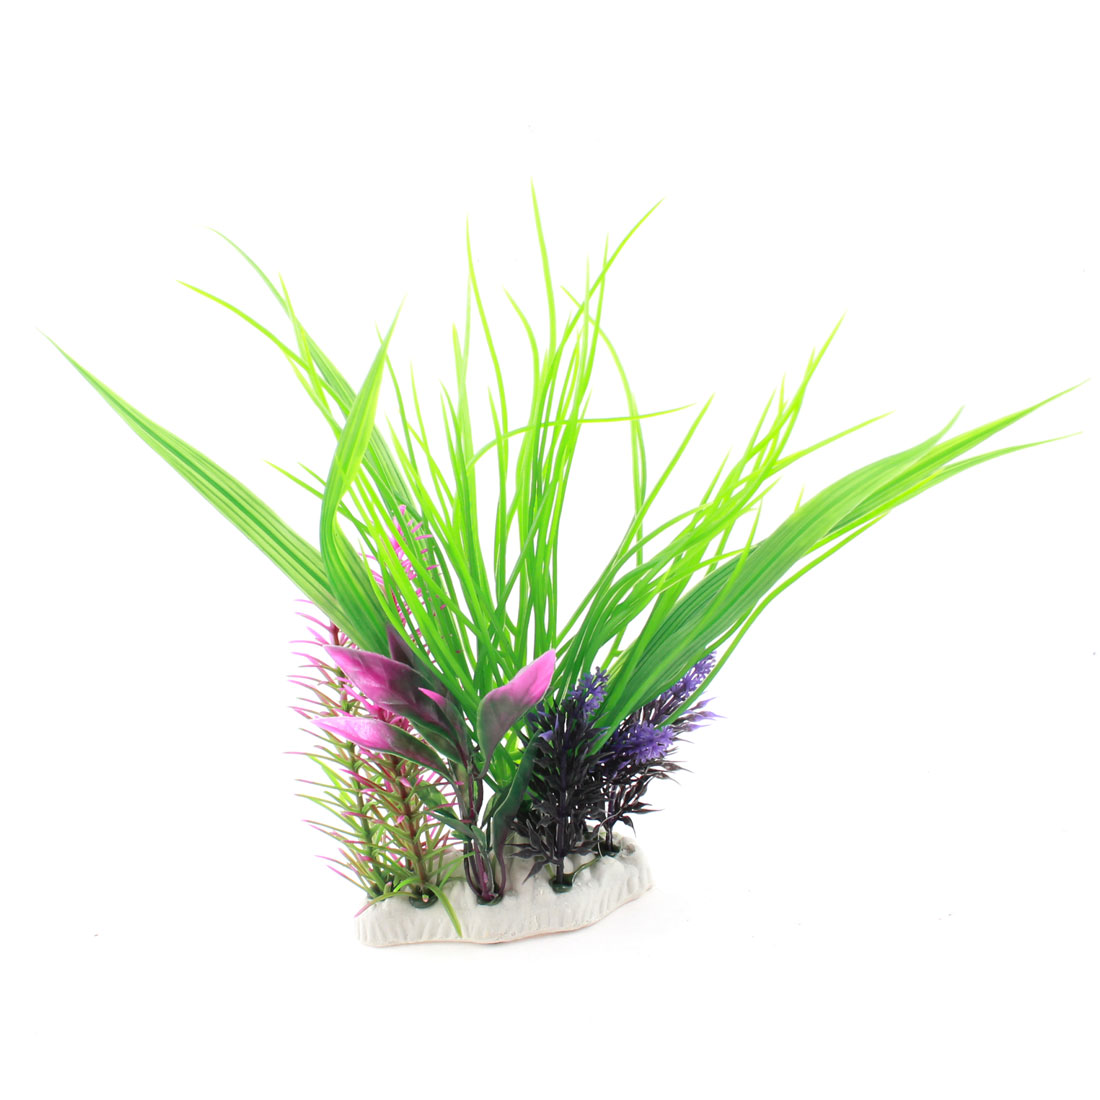 Green Purple Plastic Aquatic Plants Decor 23cm Height for Aquarium Fish Tank